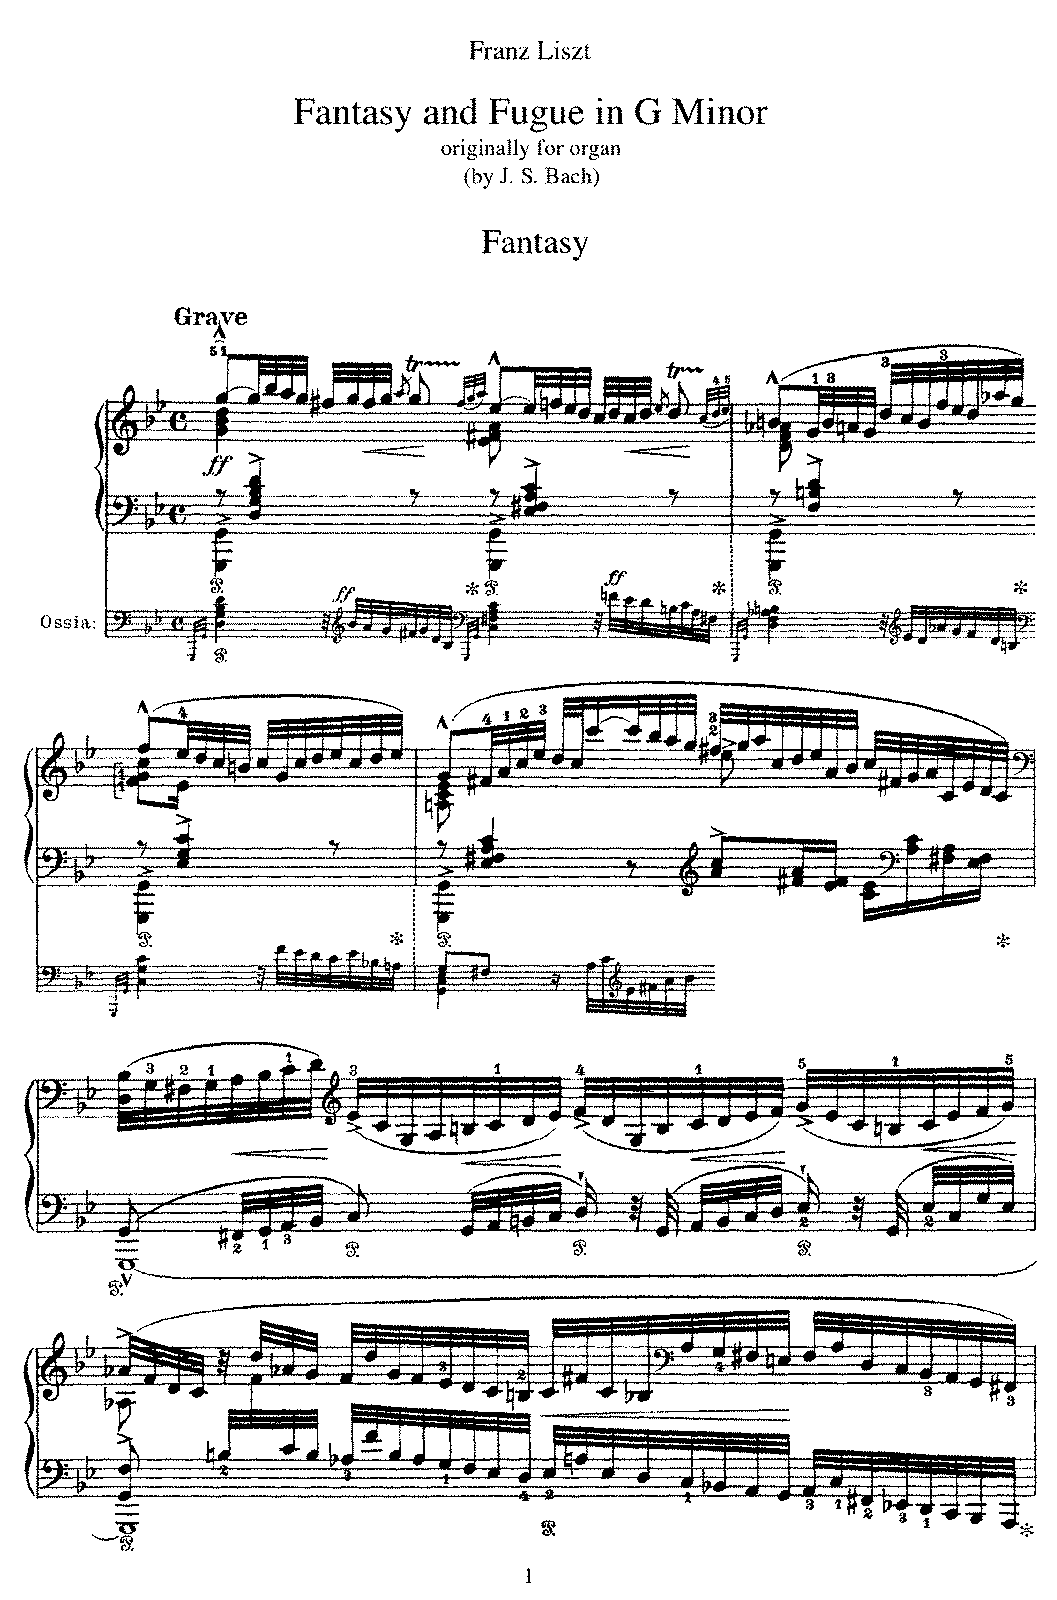 Liszt - S463ii Orgel-Fantasie und Fuge in G-moll second version.pdf